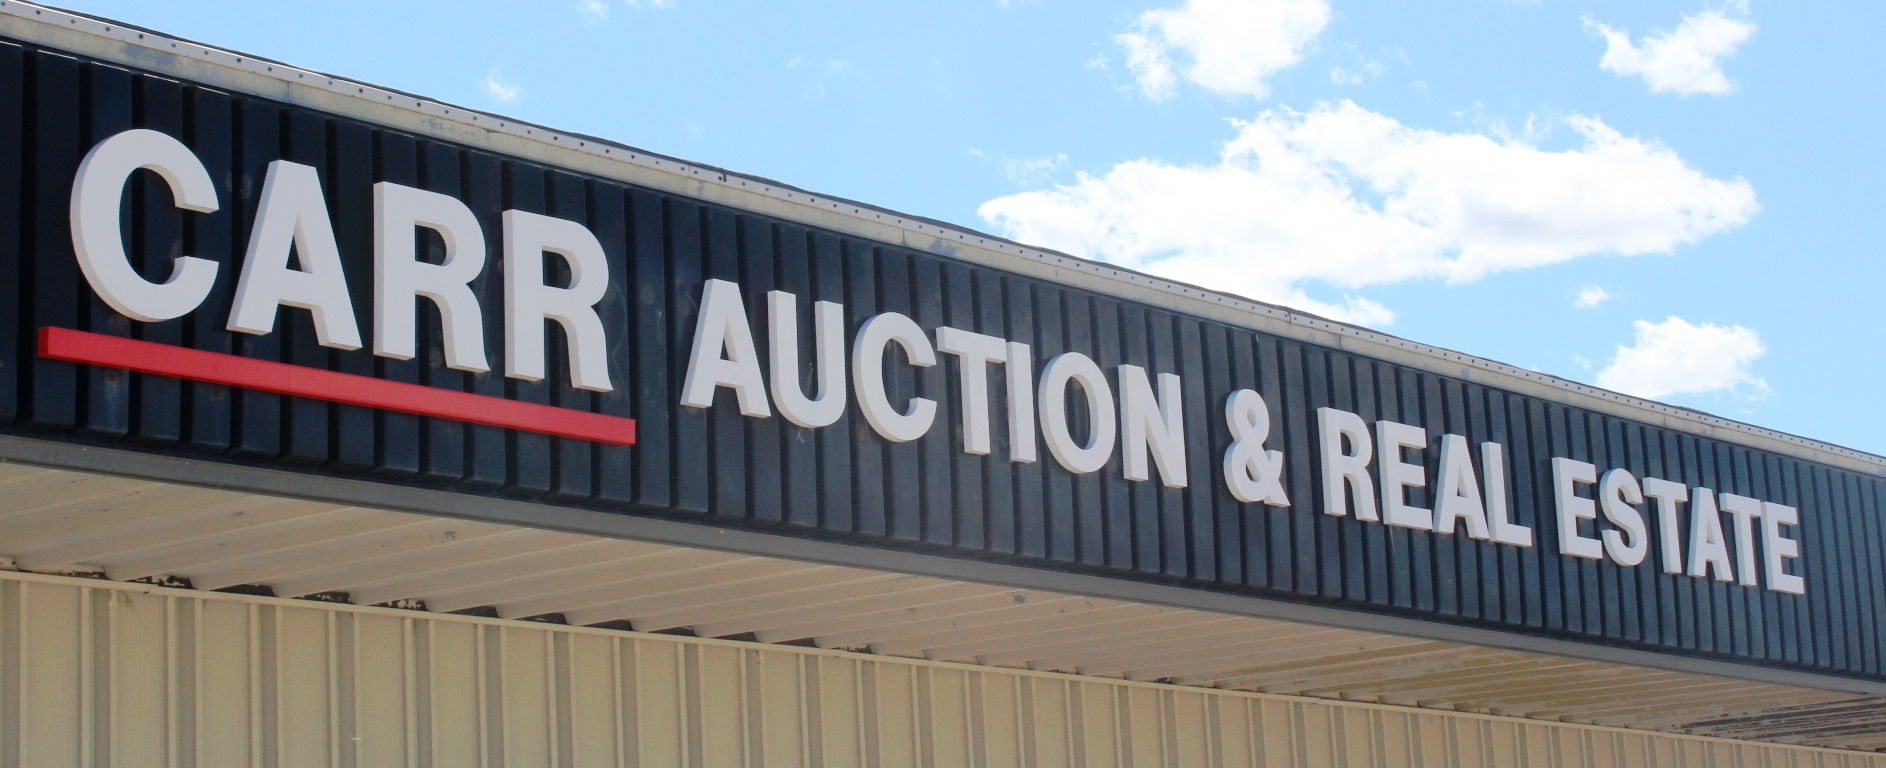 Upcoming Auctions - Carr Auction & Real Estate